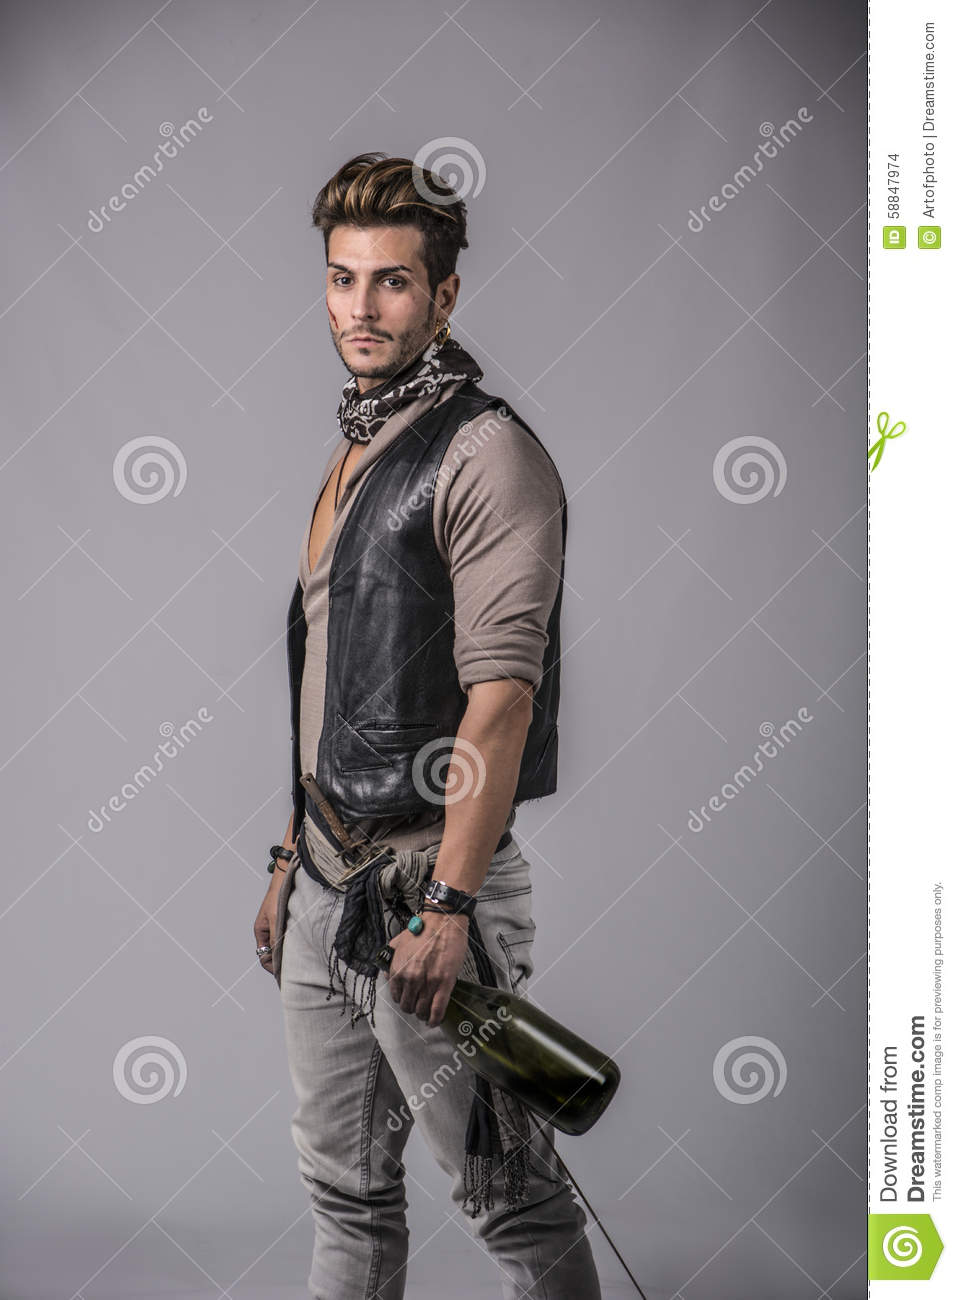 Good Looking Young Man In Pirate Fashion Outfi Stock Photo